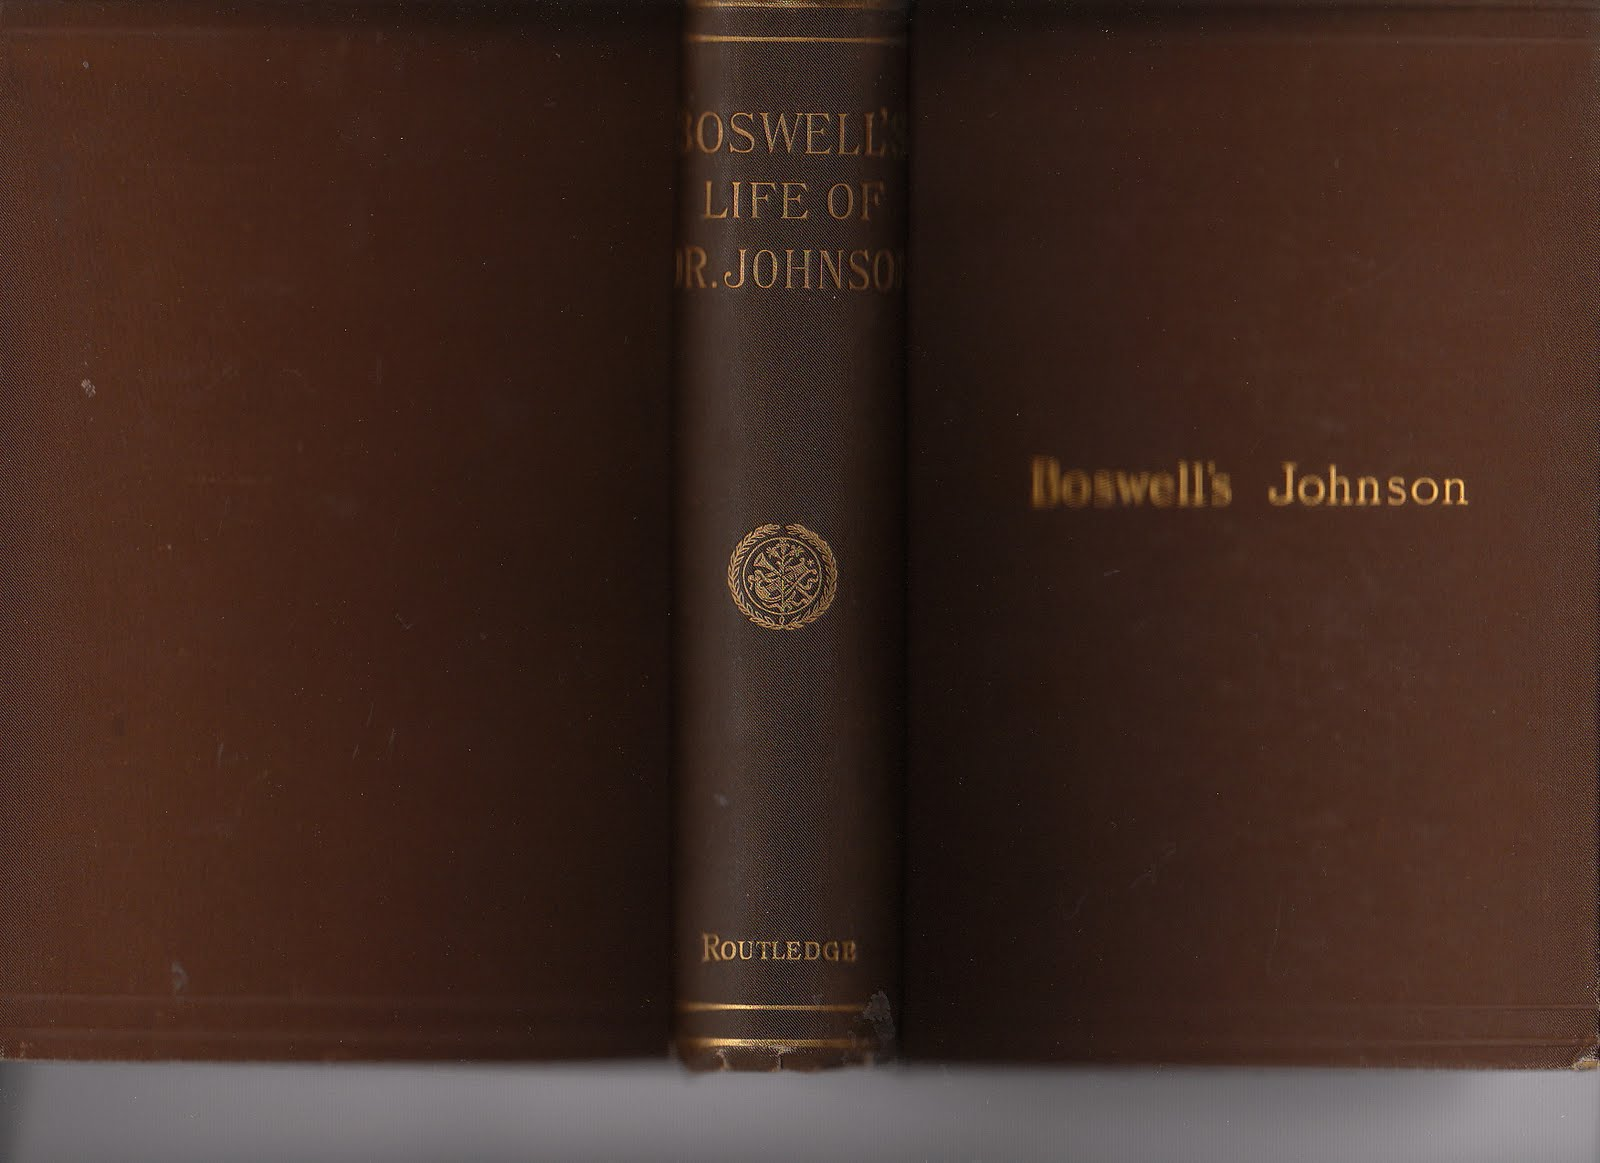 an introduction to the life of samuel johnson Life of johnson by boswell, first edition  the life of samuel johnson lld selected and abridged by edmund fuller with an introduction and appreciation by colin .